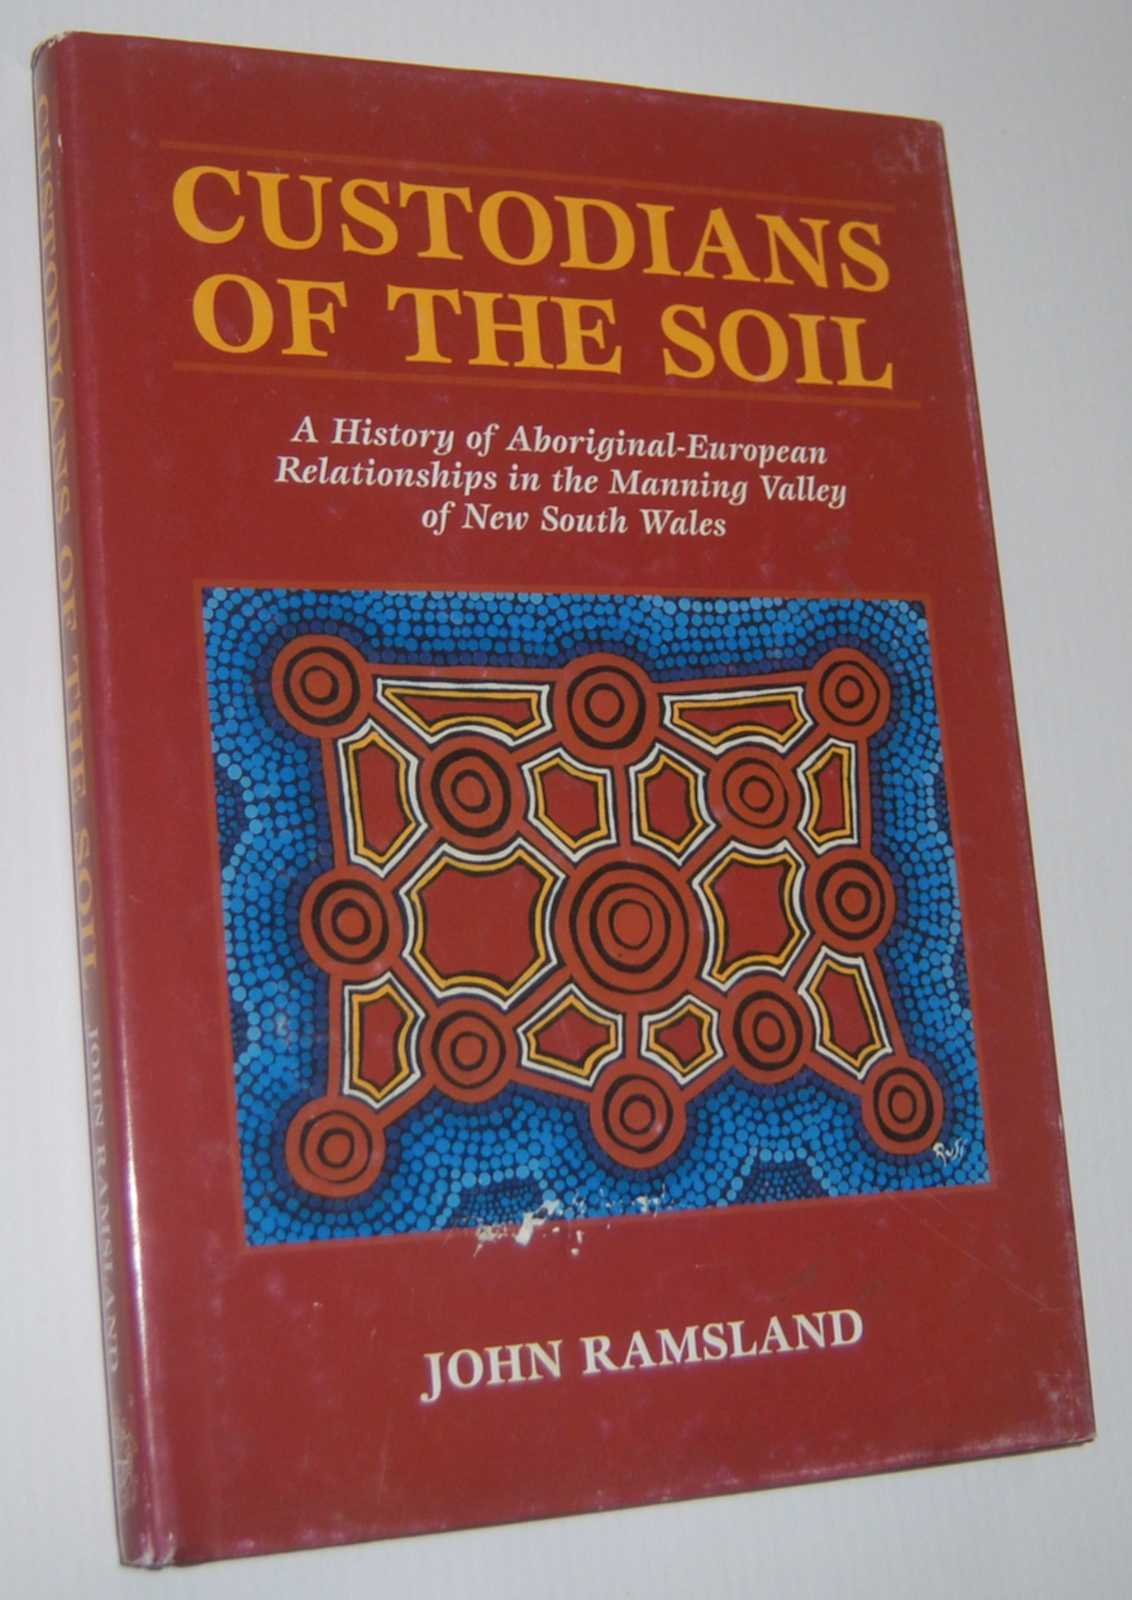 CUSTODIANS OF THE SOIL: A History of Aboriginal-European Relationships in the Manning Valley of New South Wales